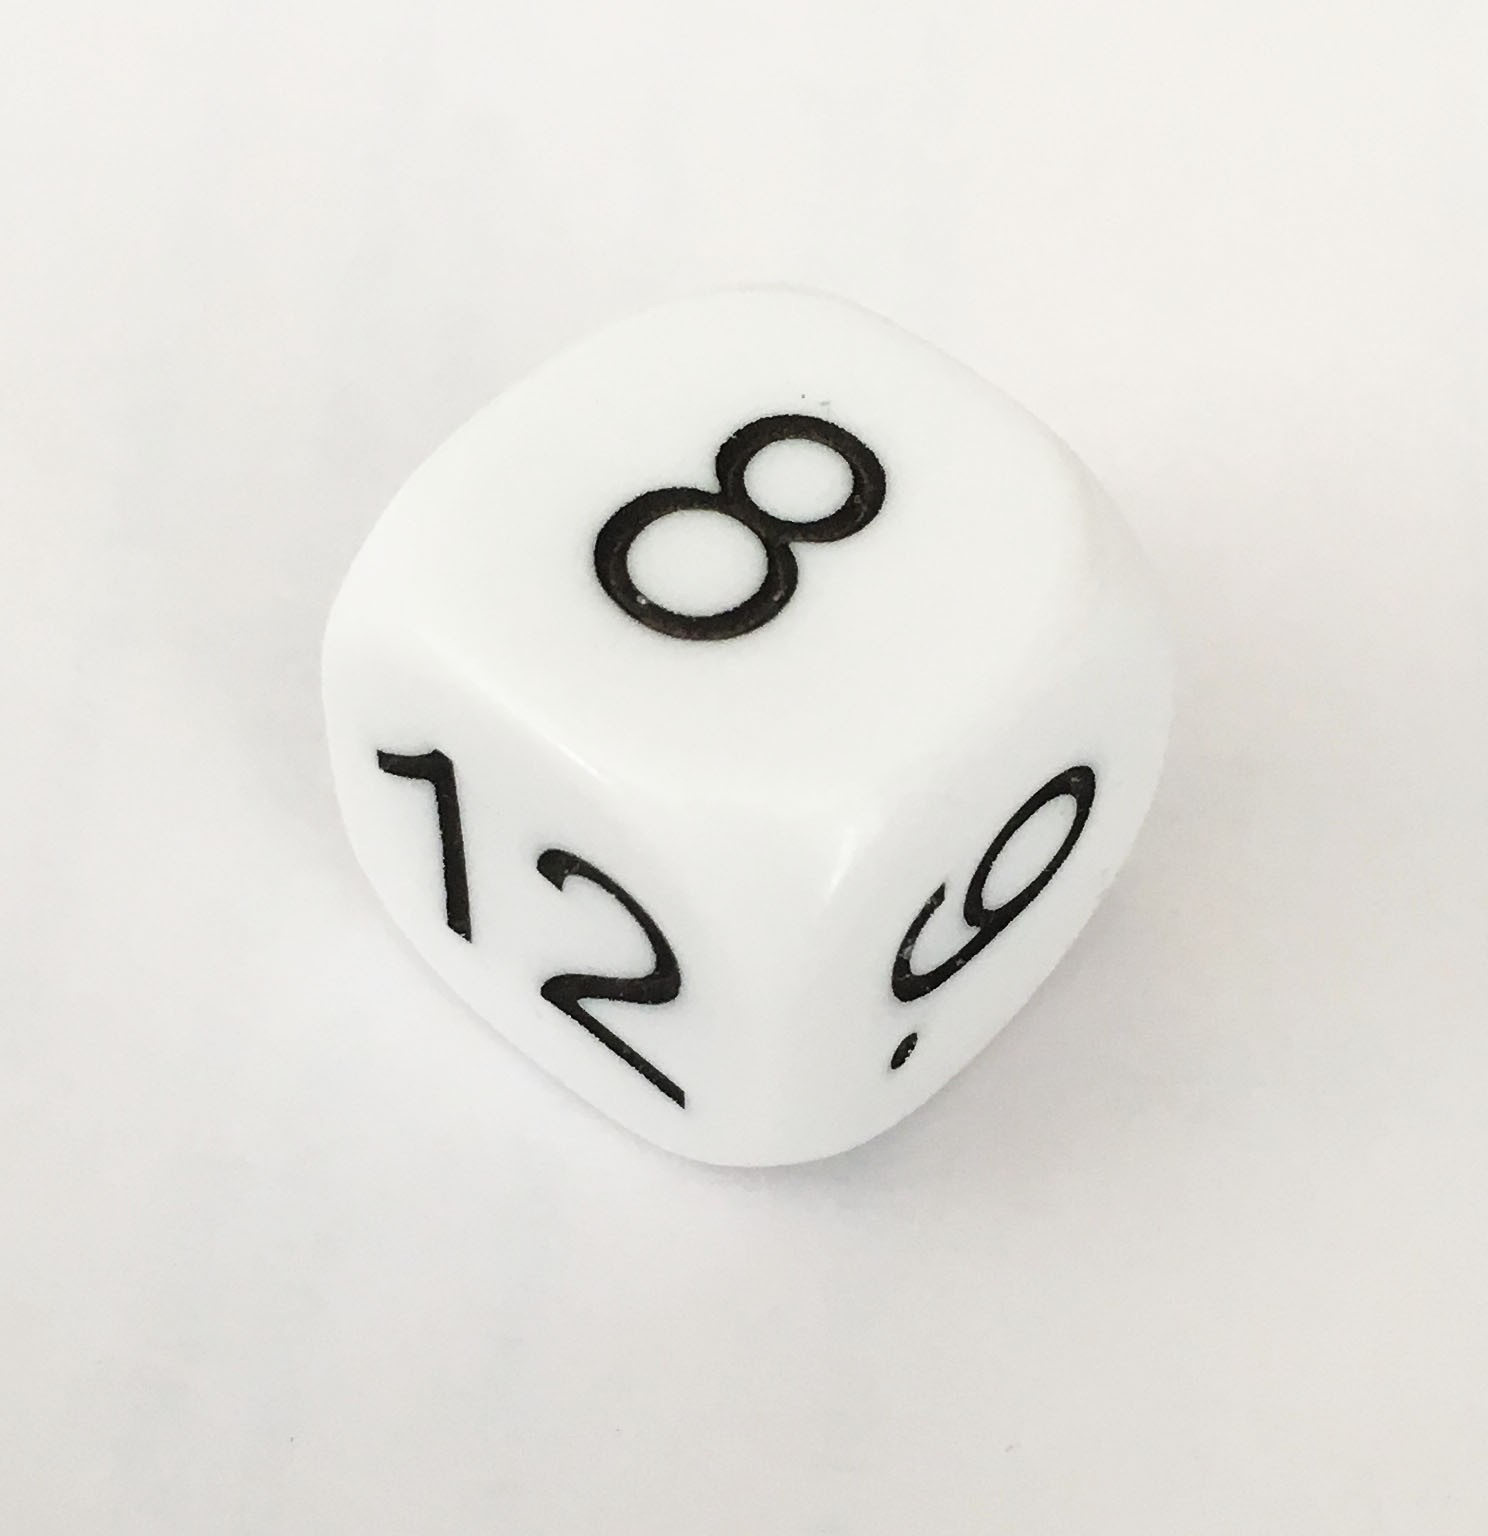 Single digit dice numbered 7-12